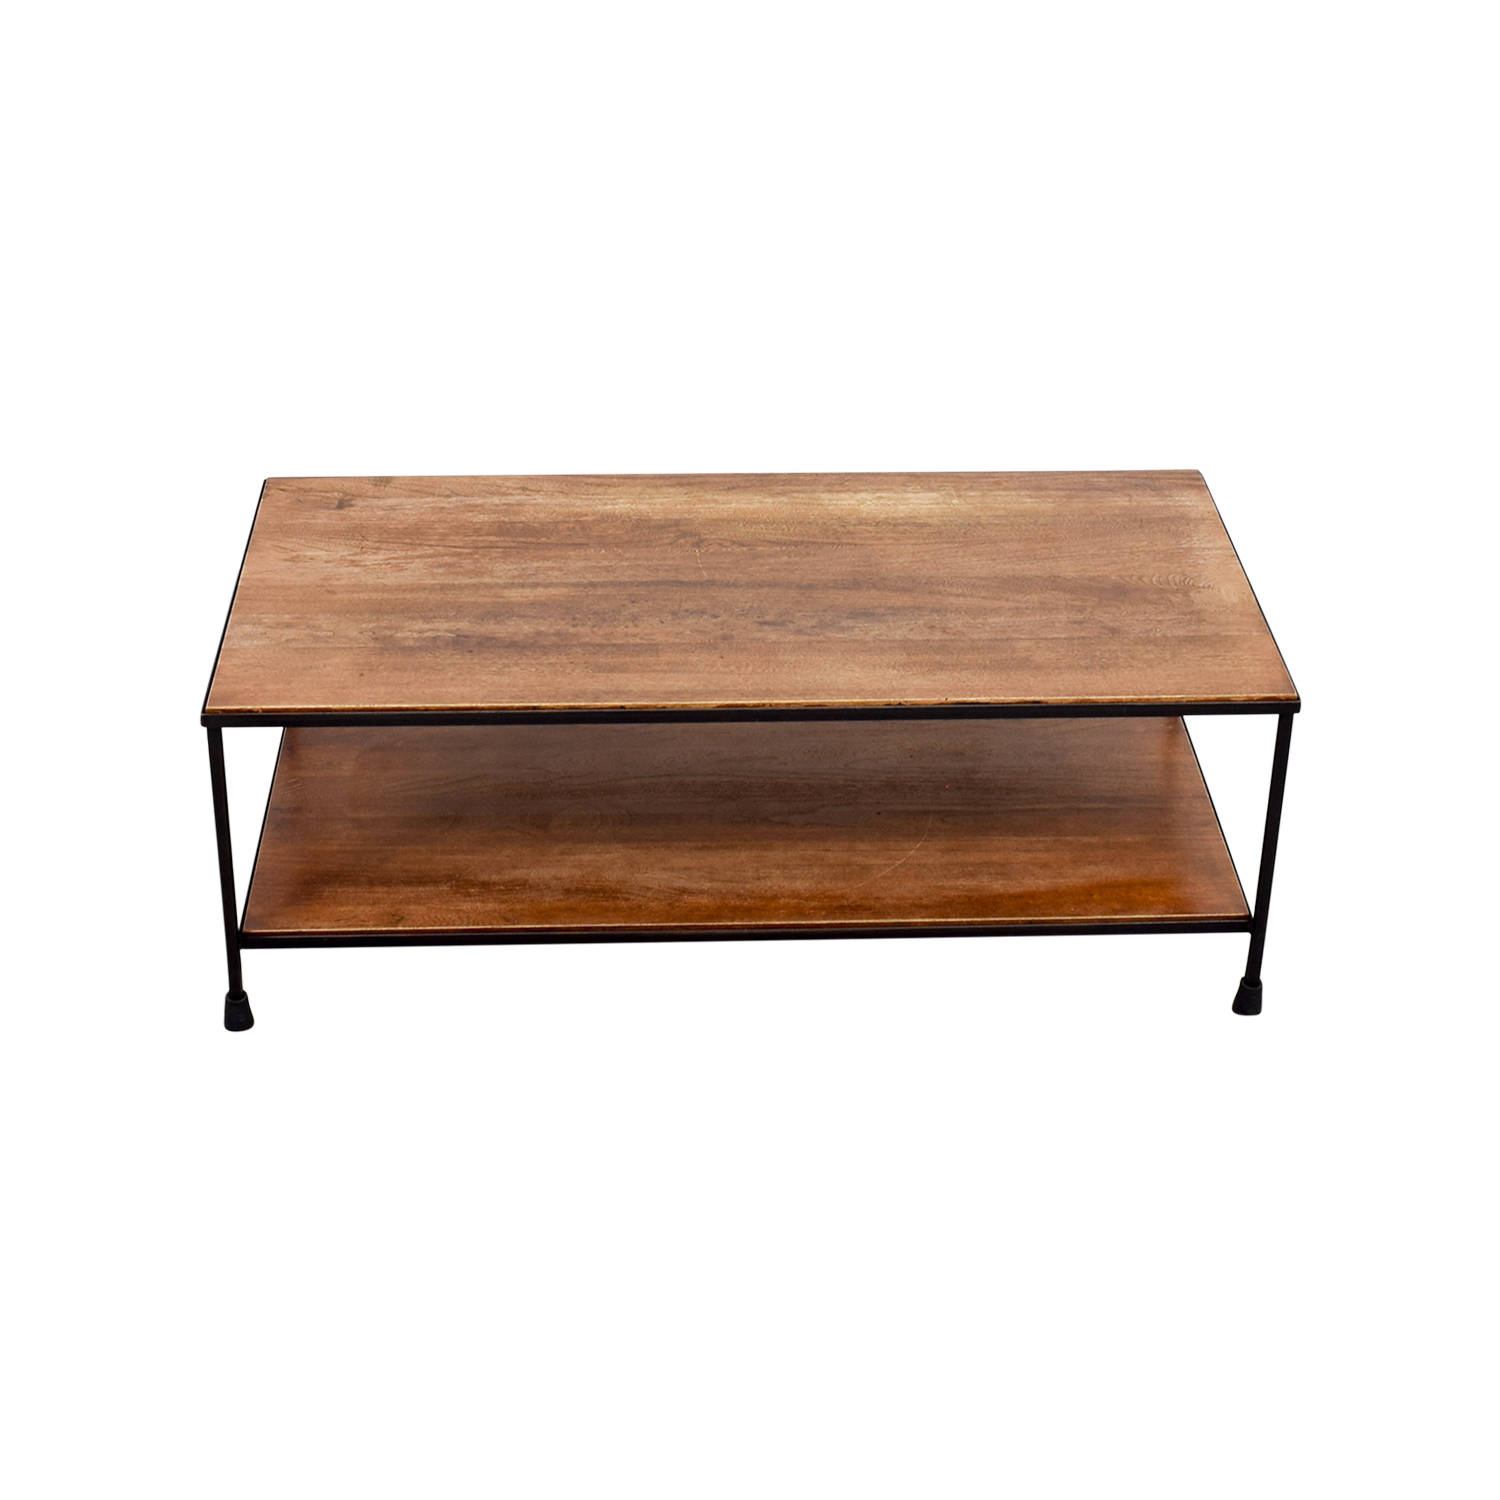 76 Off Ashley Furniture Ashley Furniture Mallacar Coffee Table Tables